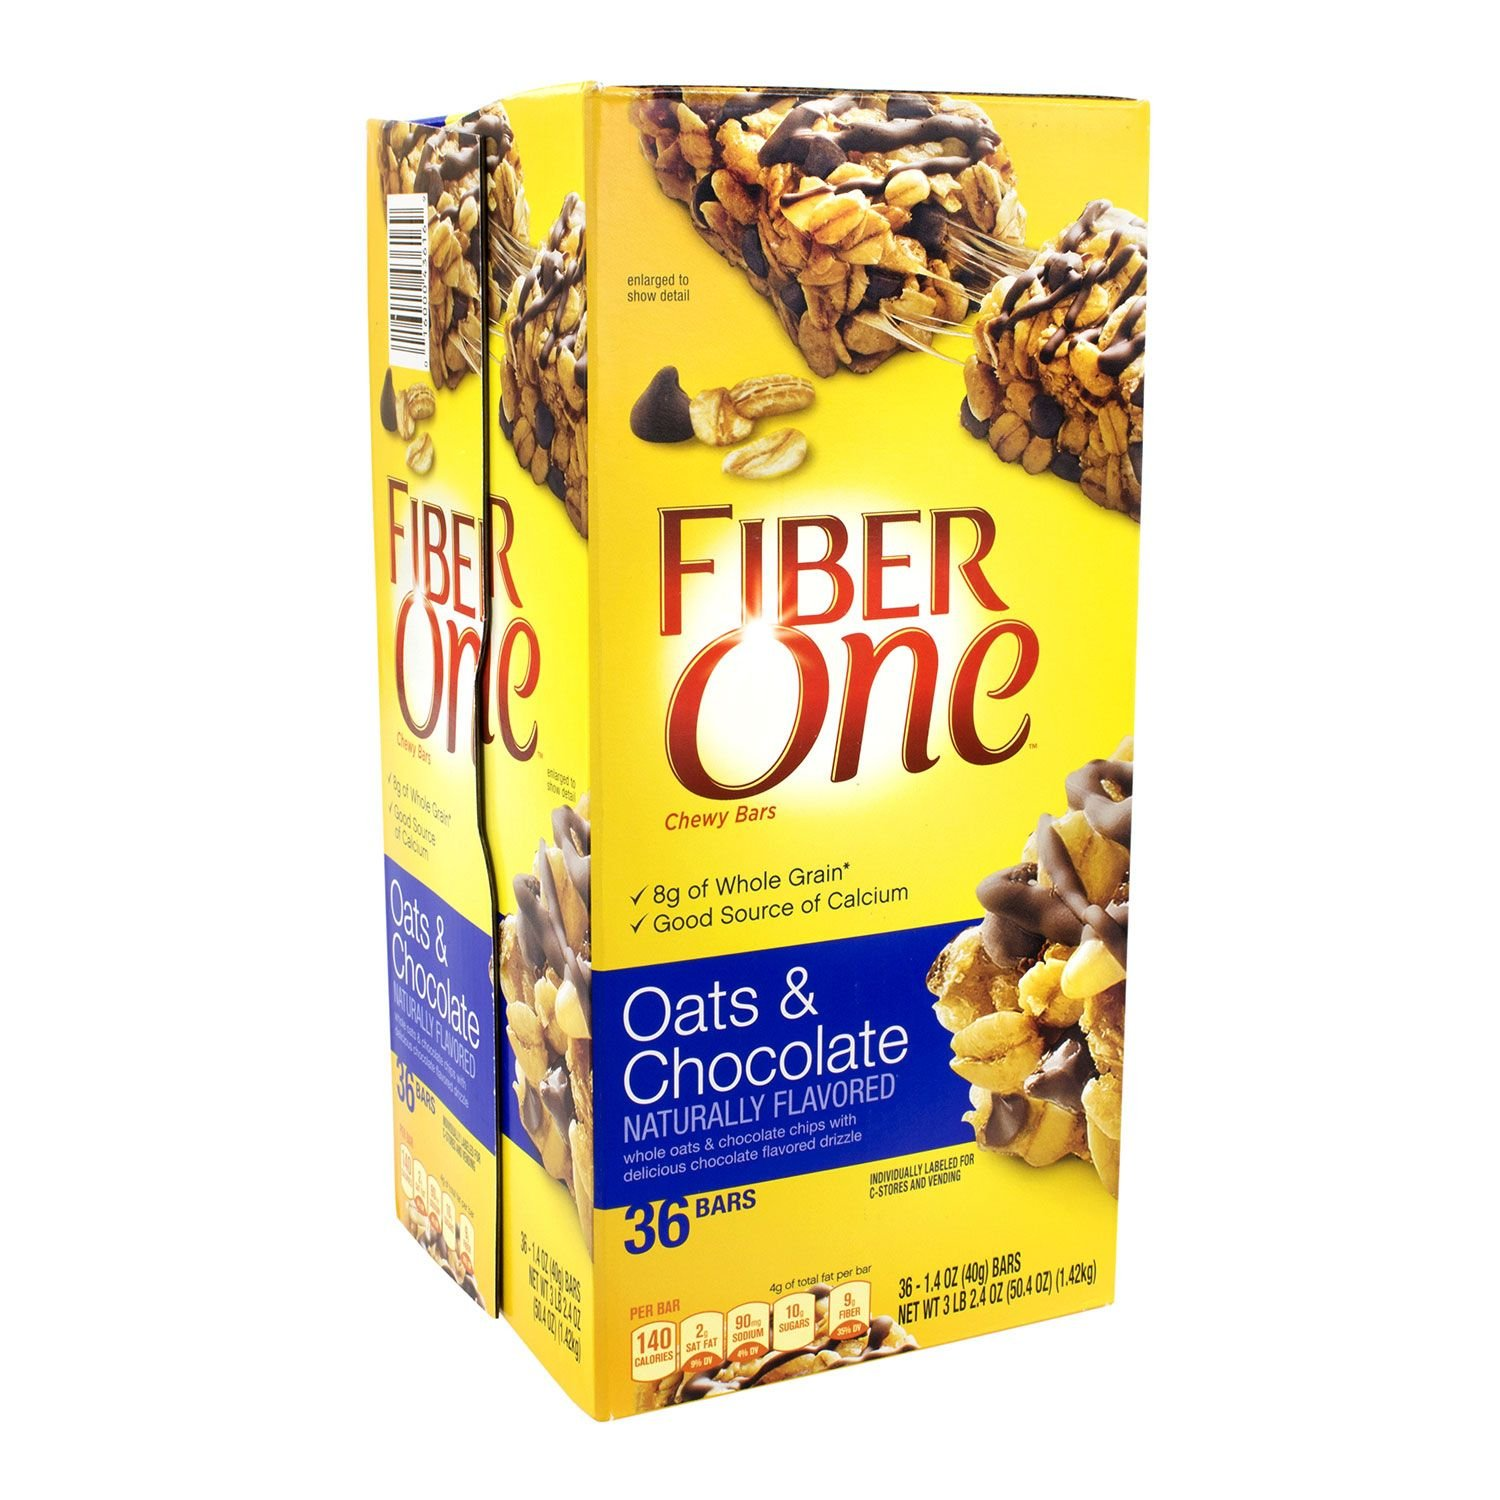 Fiber One Oats and Chocolate Chewy Bars (1.4 oz., 36 ct.) (pack of 2) by Fiber One